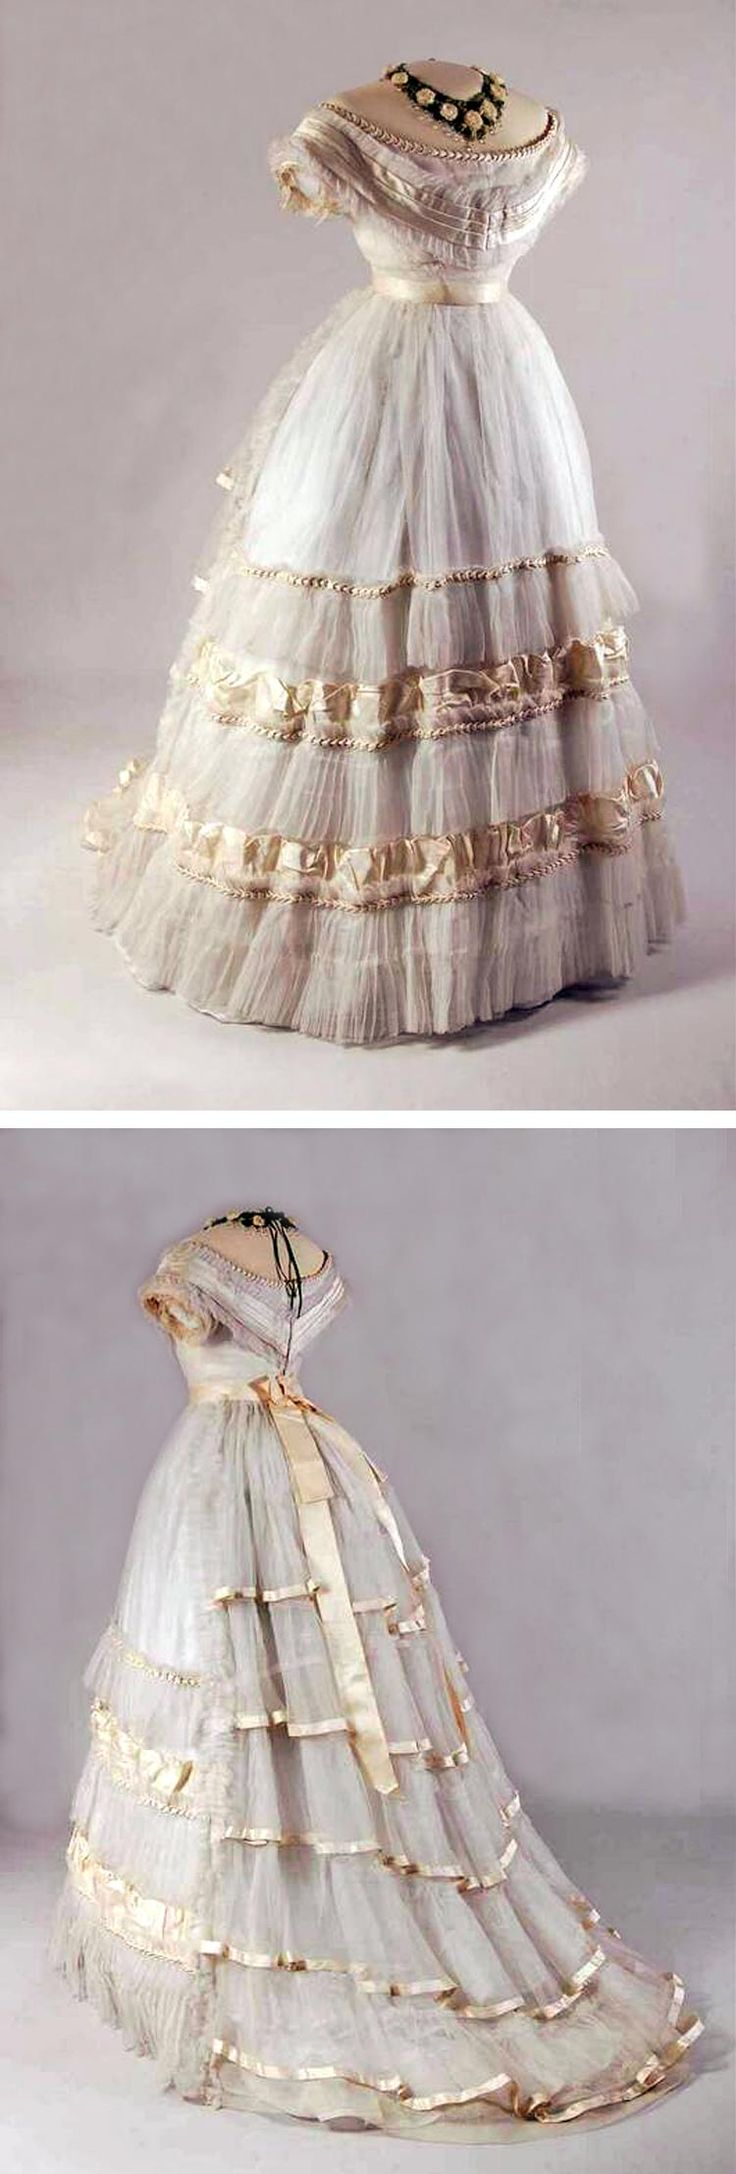 Ballgown, the Netherlands, ca. 1870-75. Silk trimmed with satin, 2 pieces. Bodice has low, oval neck, very short, tight sleeves, empire waist, and trailing queue; white cotton lining. Skirt has pleated linen waistband, closing behind with hooks & eyes. Vertical ruffles sewn onto lower half. Mode Museum, Antwerp, via Europeana Fashion